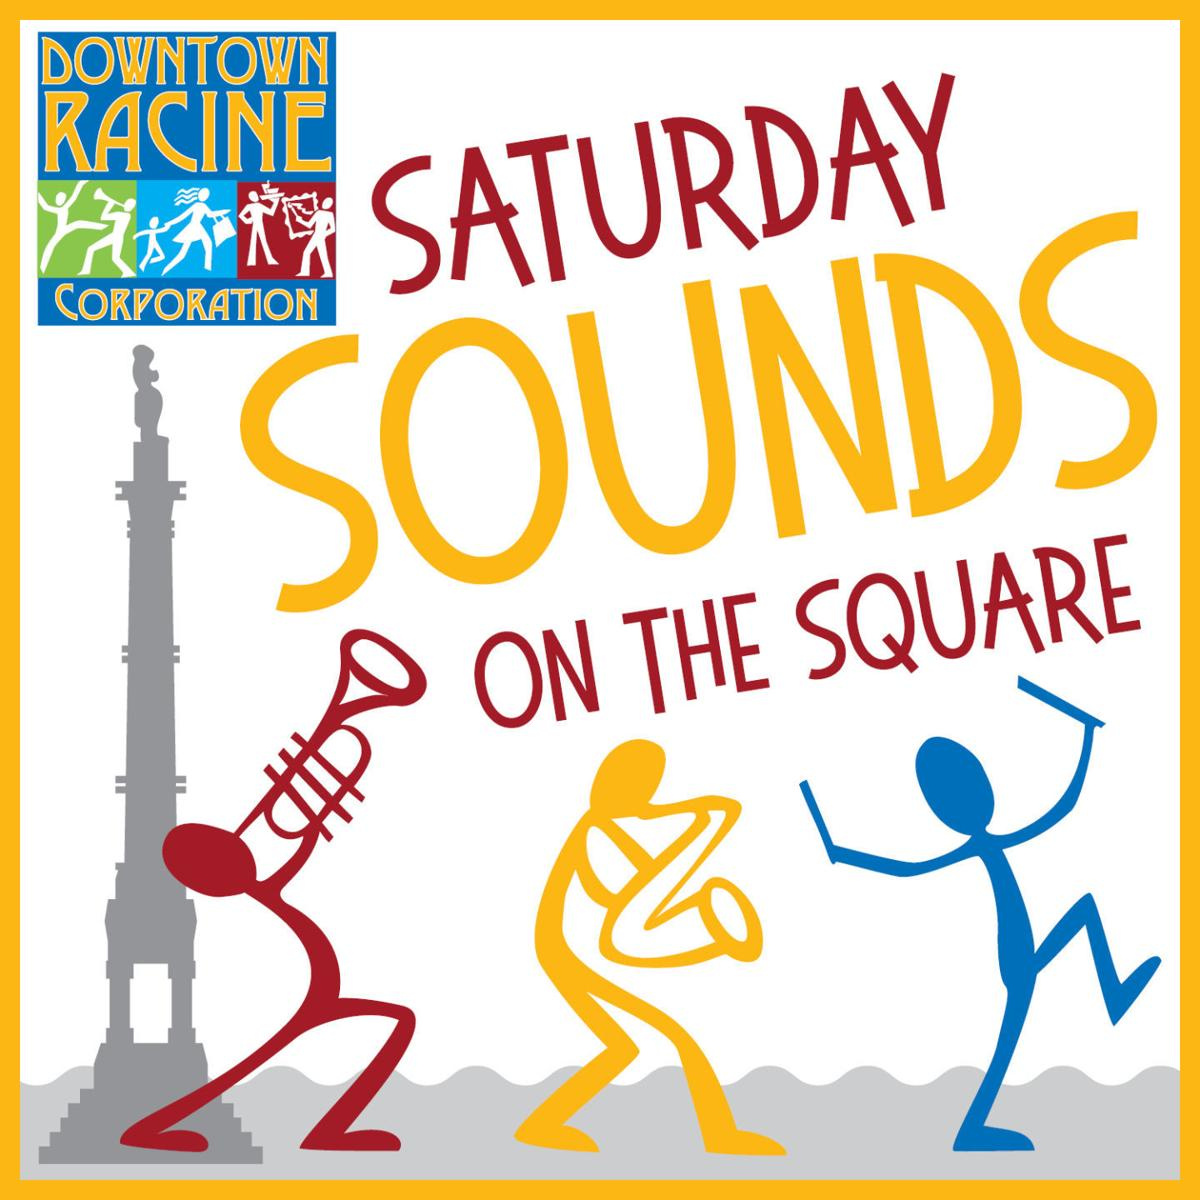 Saturday Sounds on the Square